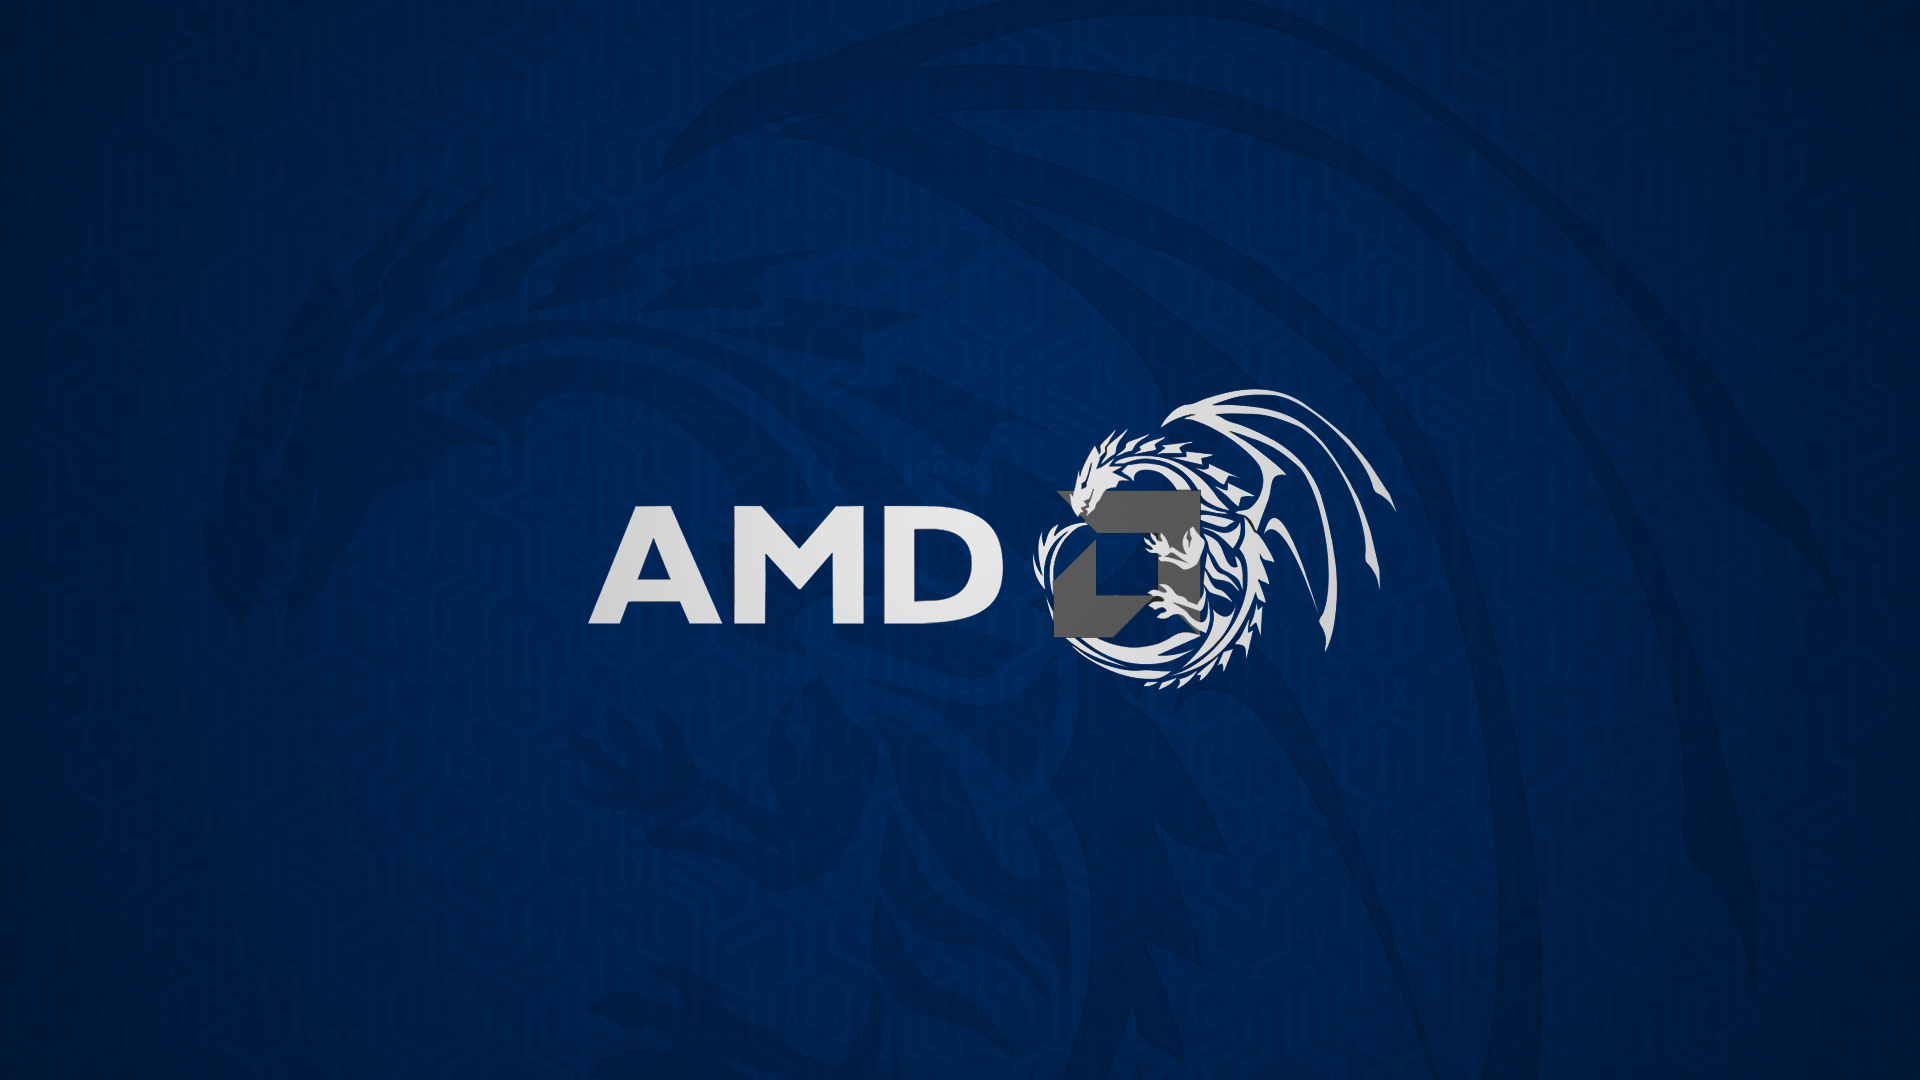 amd blue dragon hd computer 4k wallpapers images